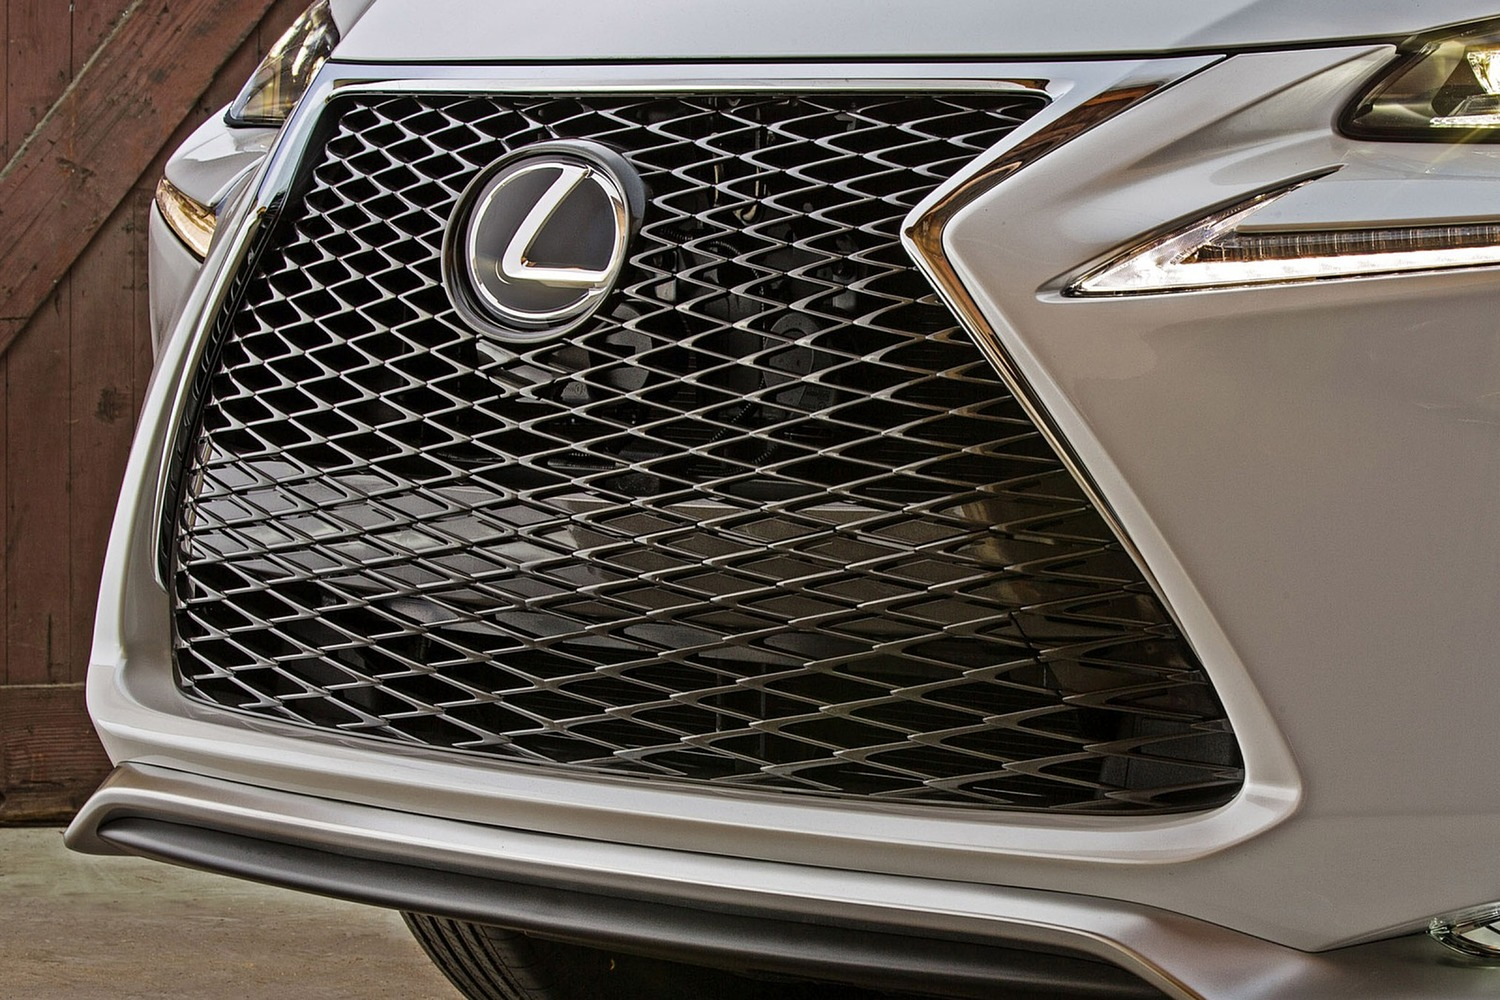 Lexus NX 200t F SPORT 4dr SUV Front Badge (2015 model year shown)